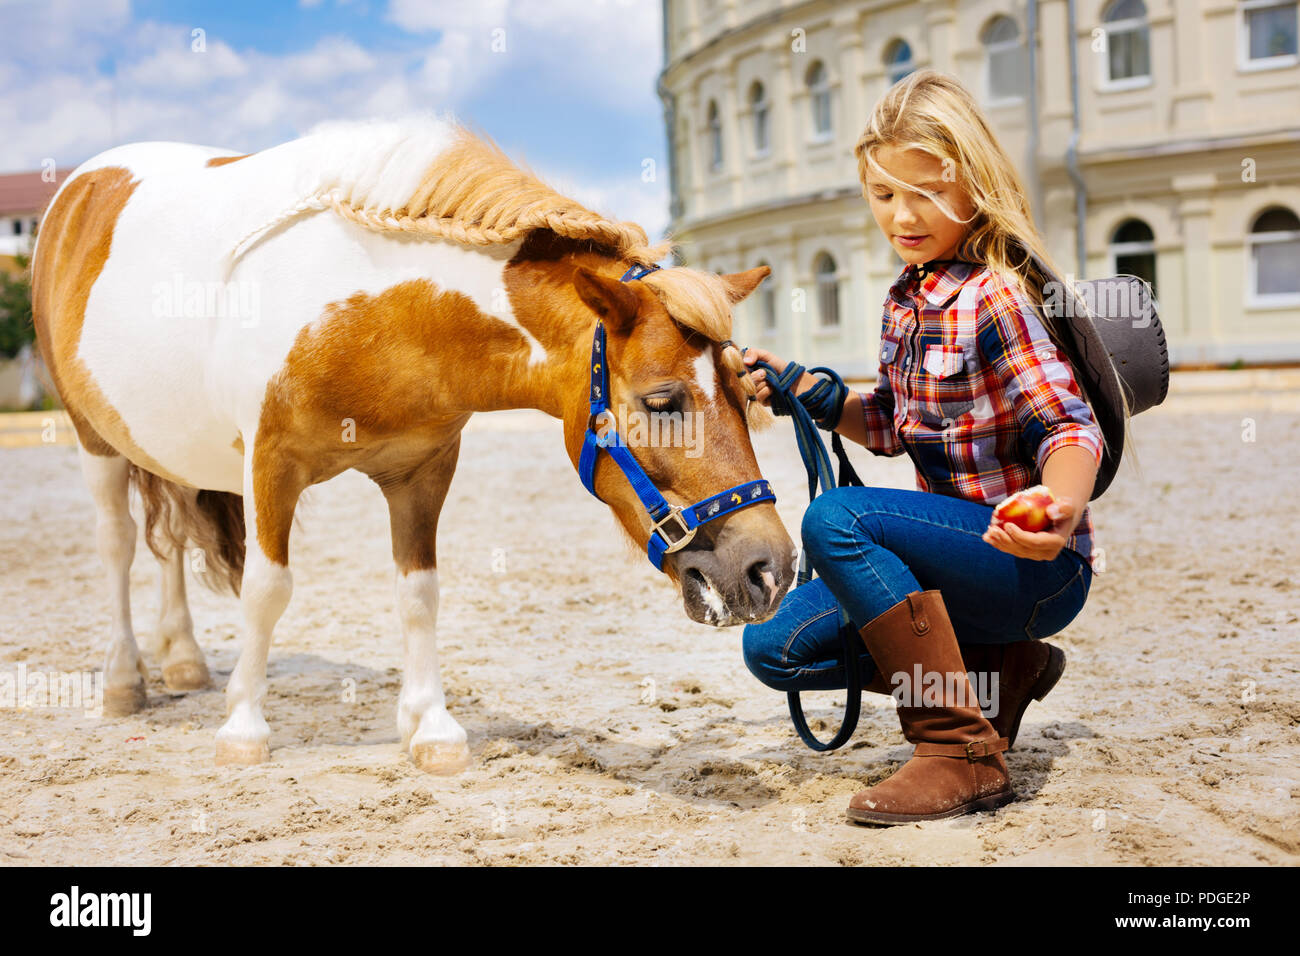 Cute girl portant des bottes d'équitation en cuir marron cheval alimentation Photo Stock